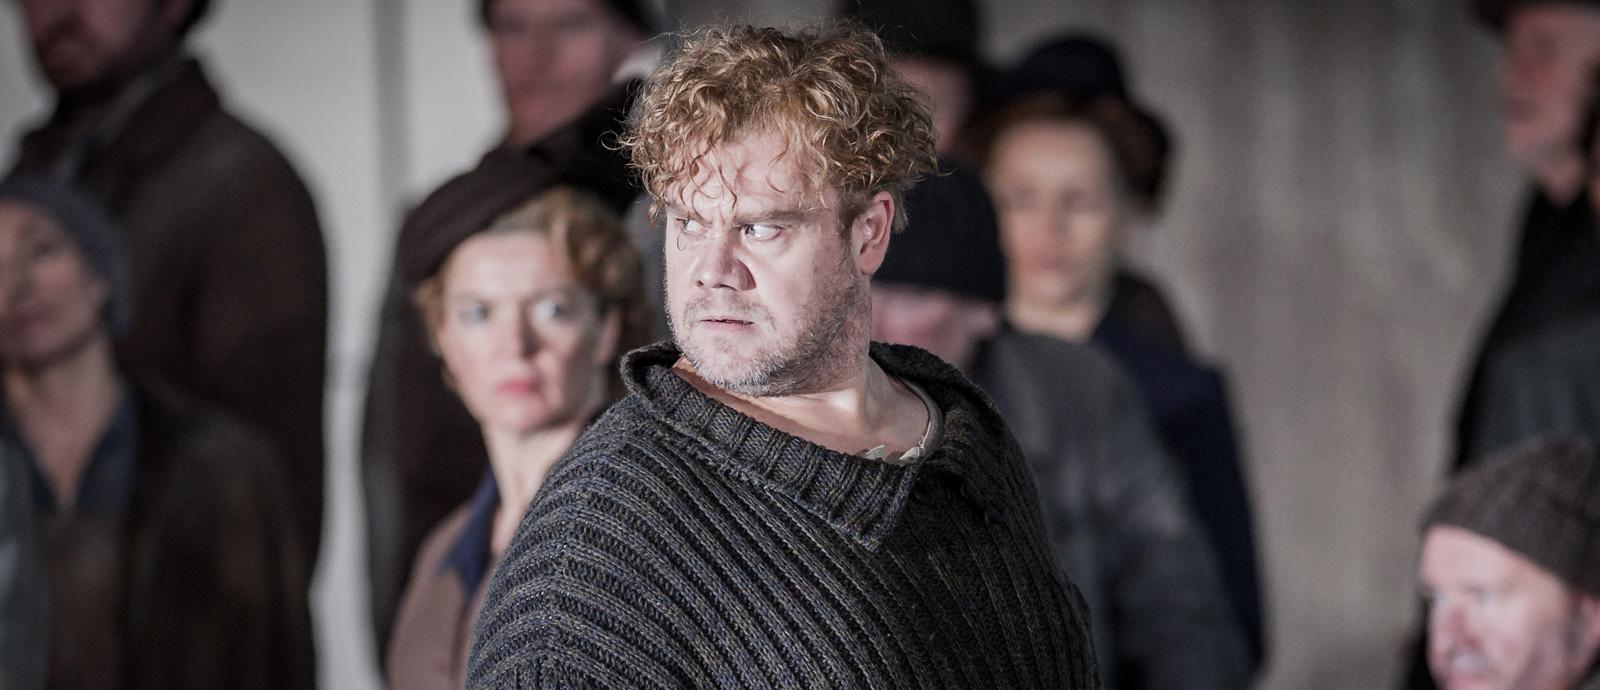 ENO Peter Grimes: Stuart Skelton as Peter Grimes (c) Robert Workman